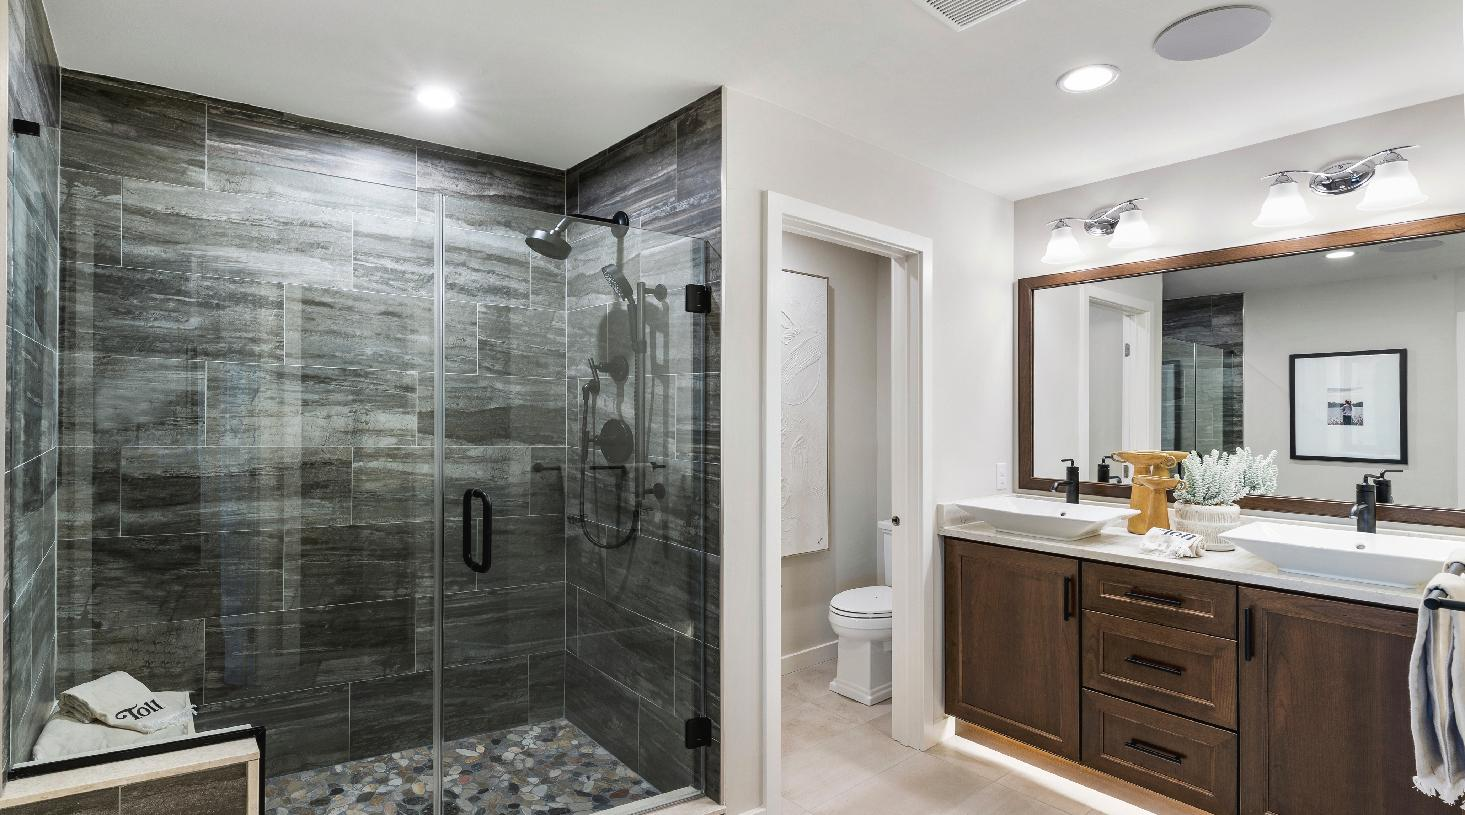 Primary bathroom with dual-sink vanity and large shower with seat